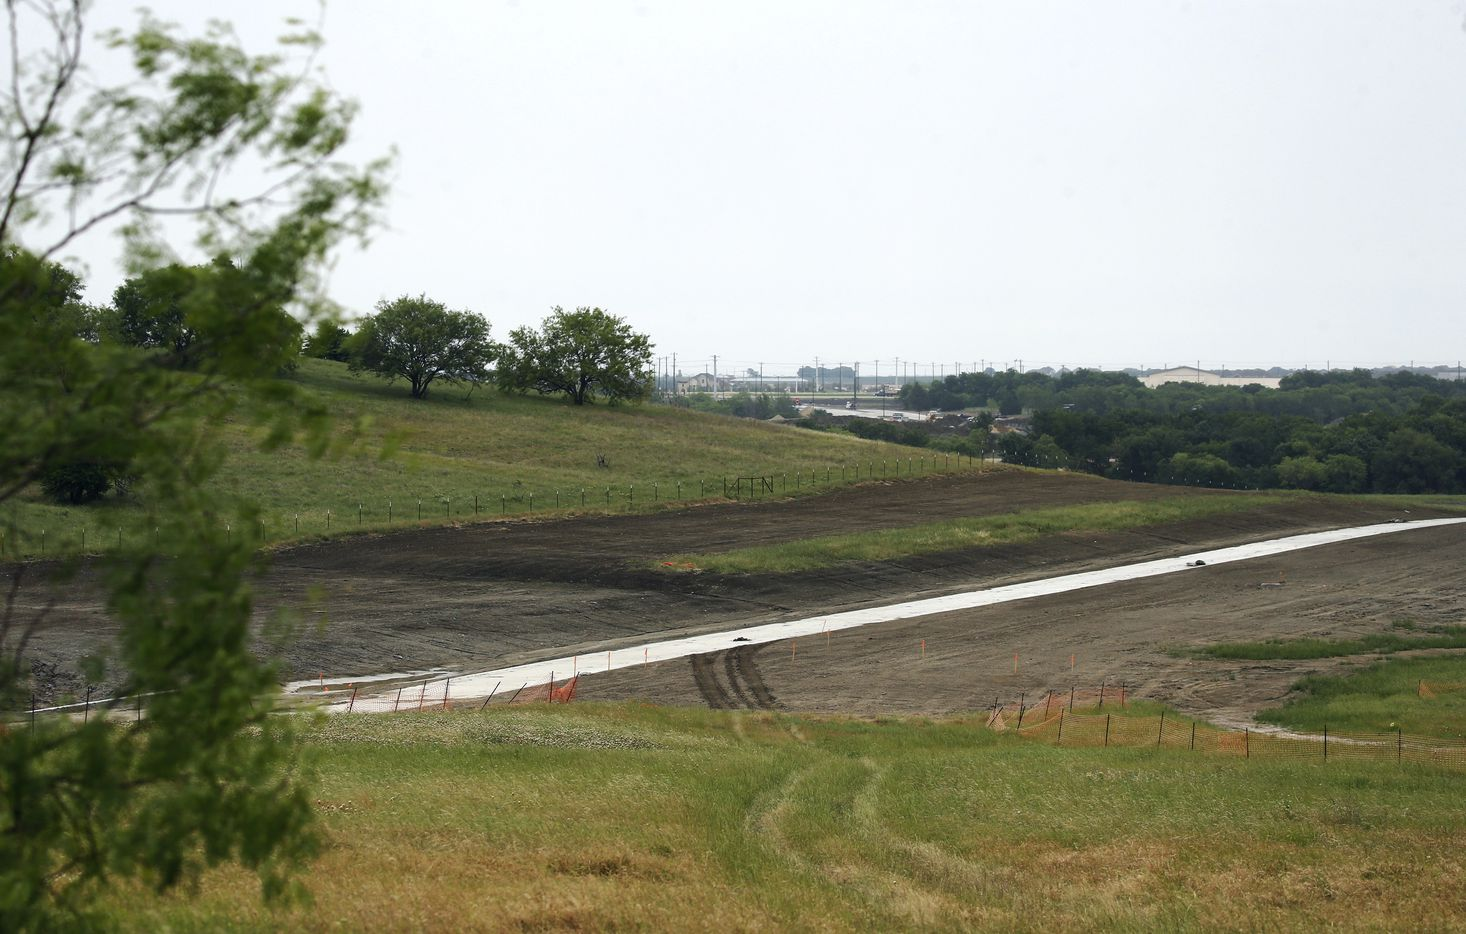 View of part of the 8-mile concrete path that will be used during tournaments at PGA Frisco in Frisco, Texas, on Wednesday, May 20, 2020. The path will also be open to the public as part of Frisco's hike and bike trail when tournaments are not at play. The $520 million project is a mixed-use development that will be home to the PGA of America headquarters and two championship golf courses.